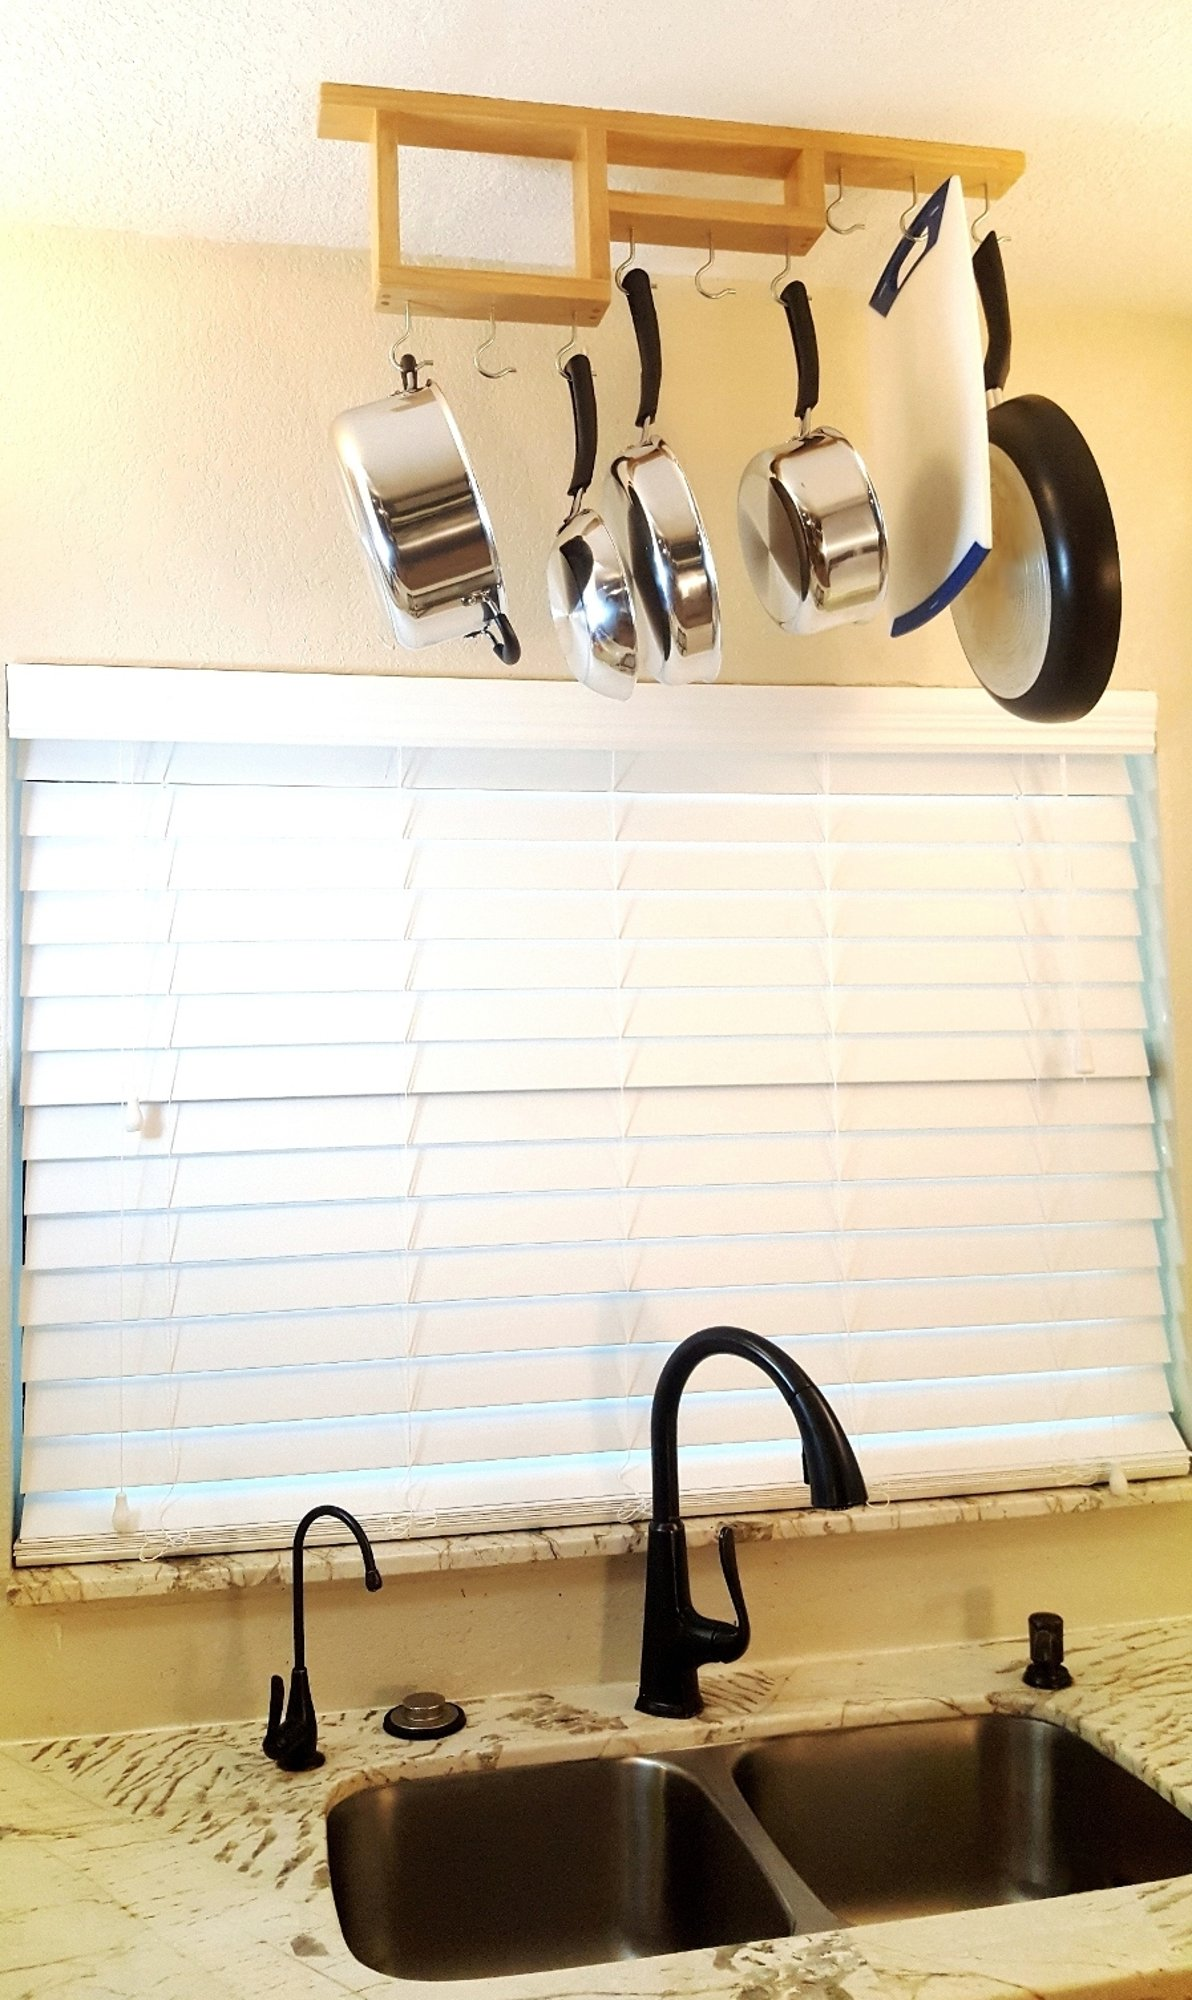 Pot Rack: Easy to Reach Ceiling Mount Solid-Wood Pan Hanger by HomeHarmony by HomeHarmony (Image #5)